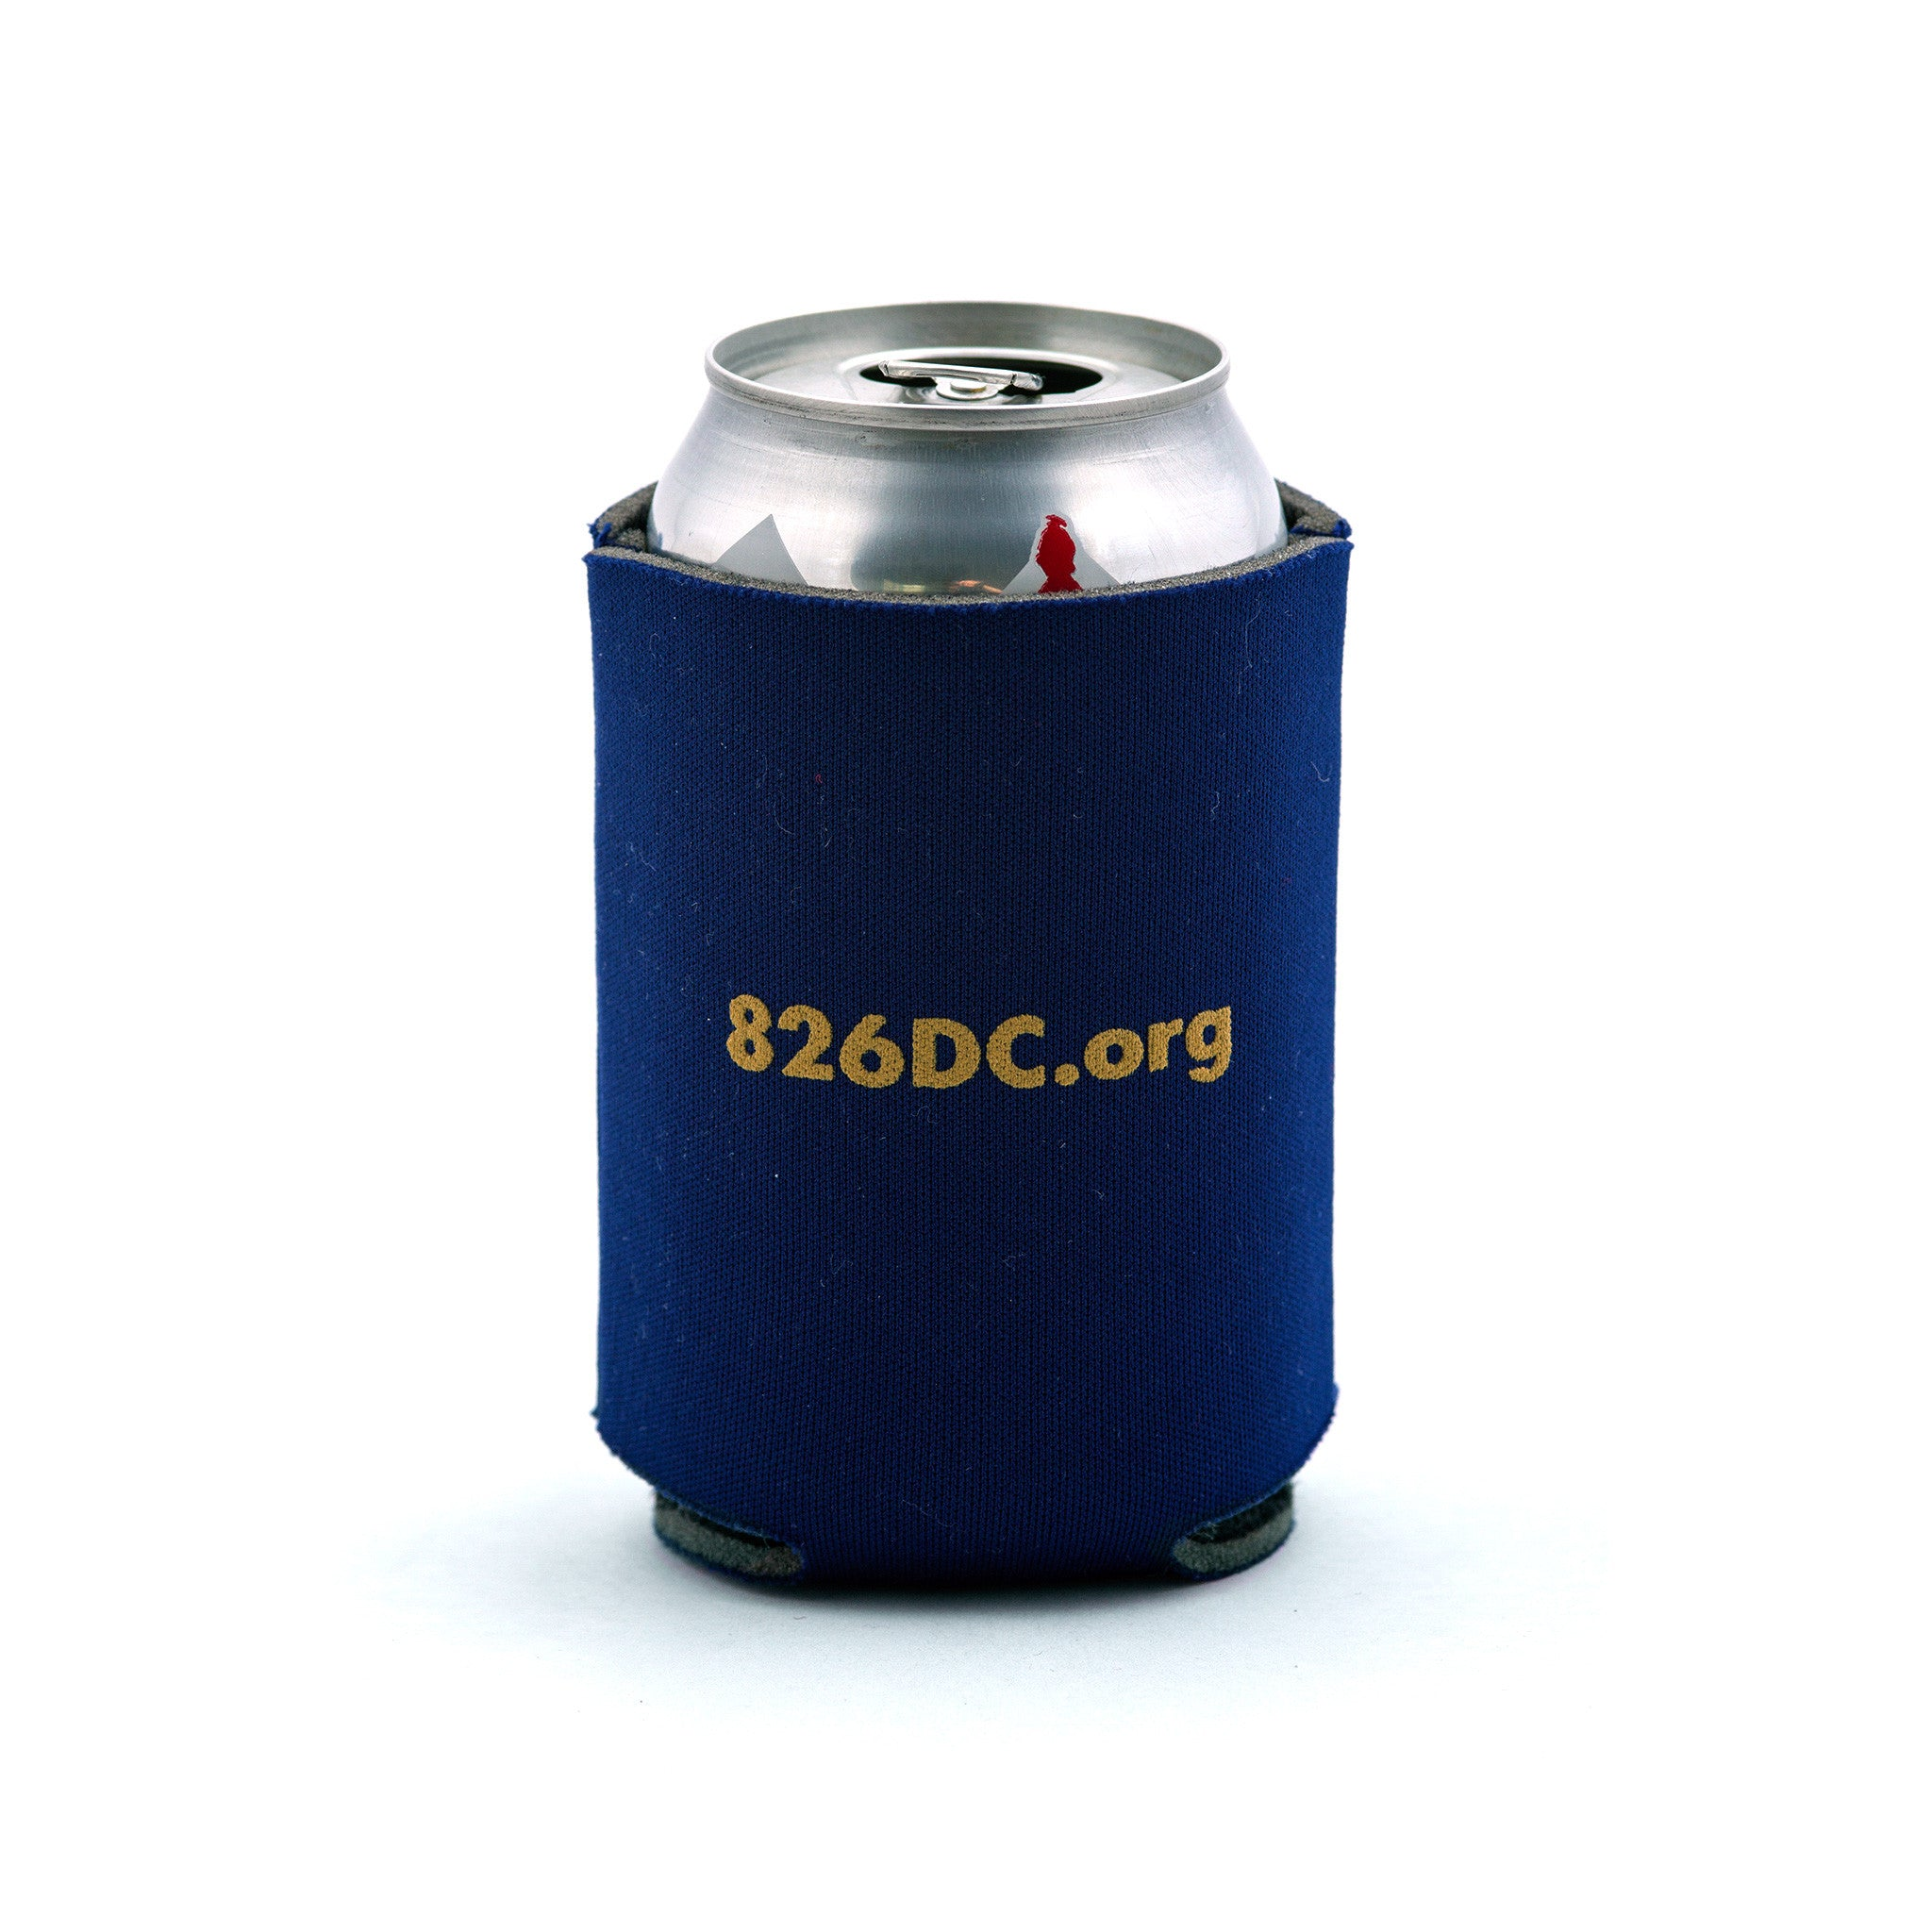 Navy blue foam koozie, perfect for cans. Tivoli's logo on one side with 826dc.org on the other.